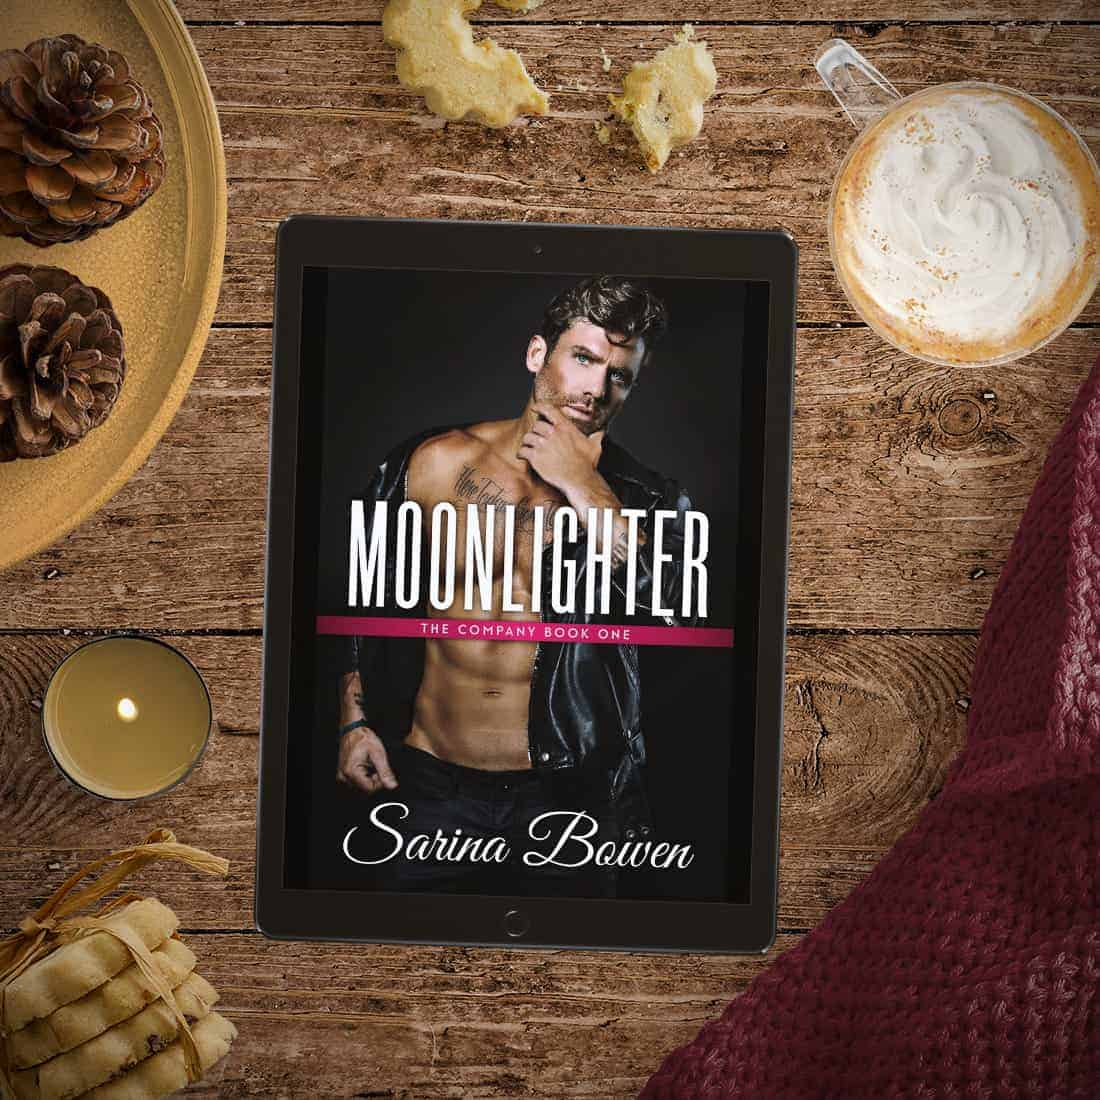 Moonlighter by Sarina Bowen, the first book in The Company series, is a fun sports romance with tons of great banter, suspenseful espionage, fake dating, and only one bed!